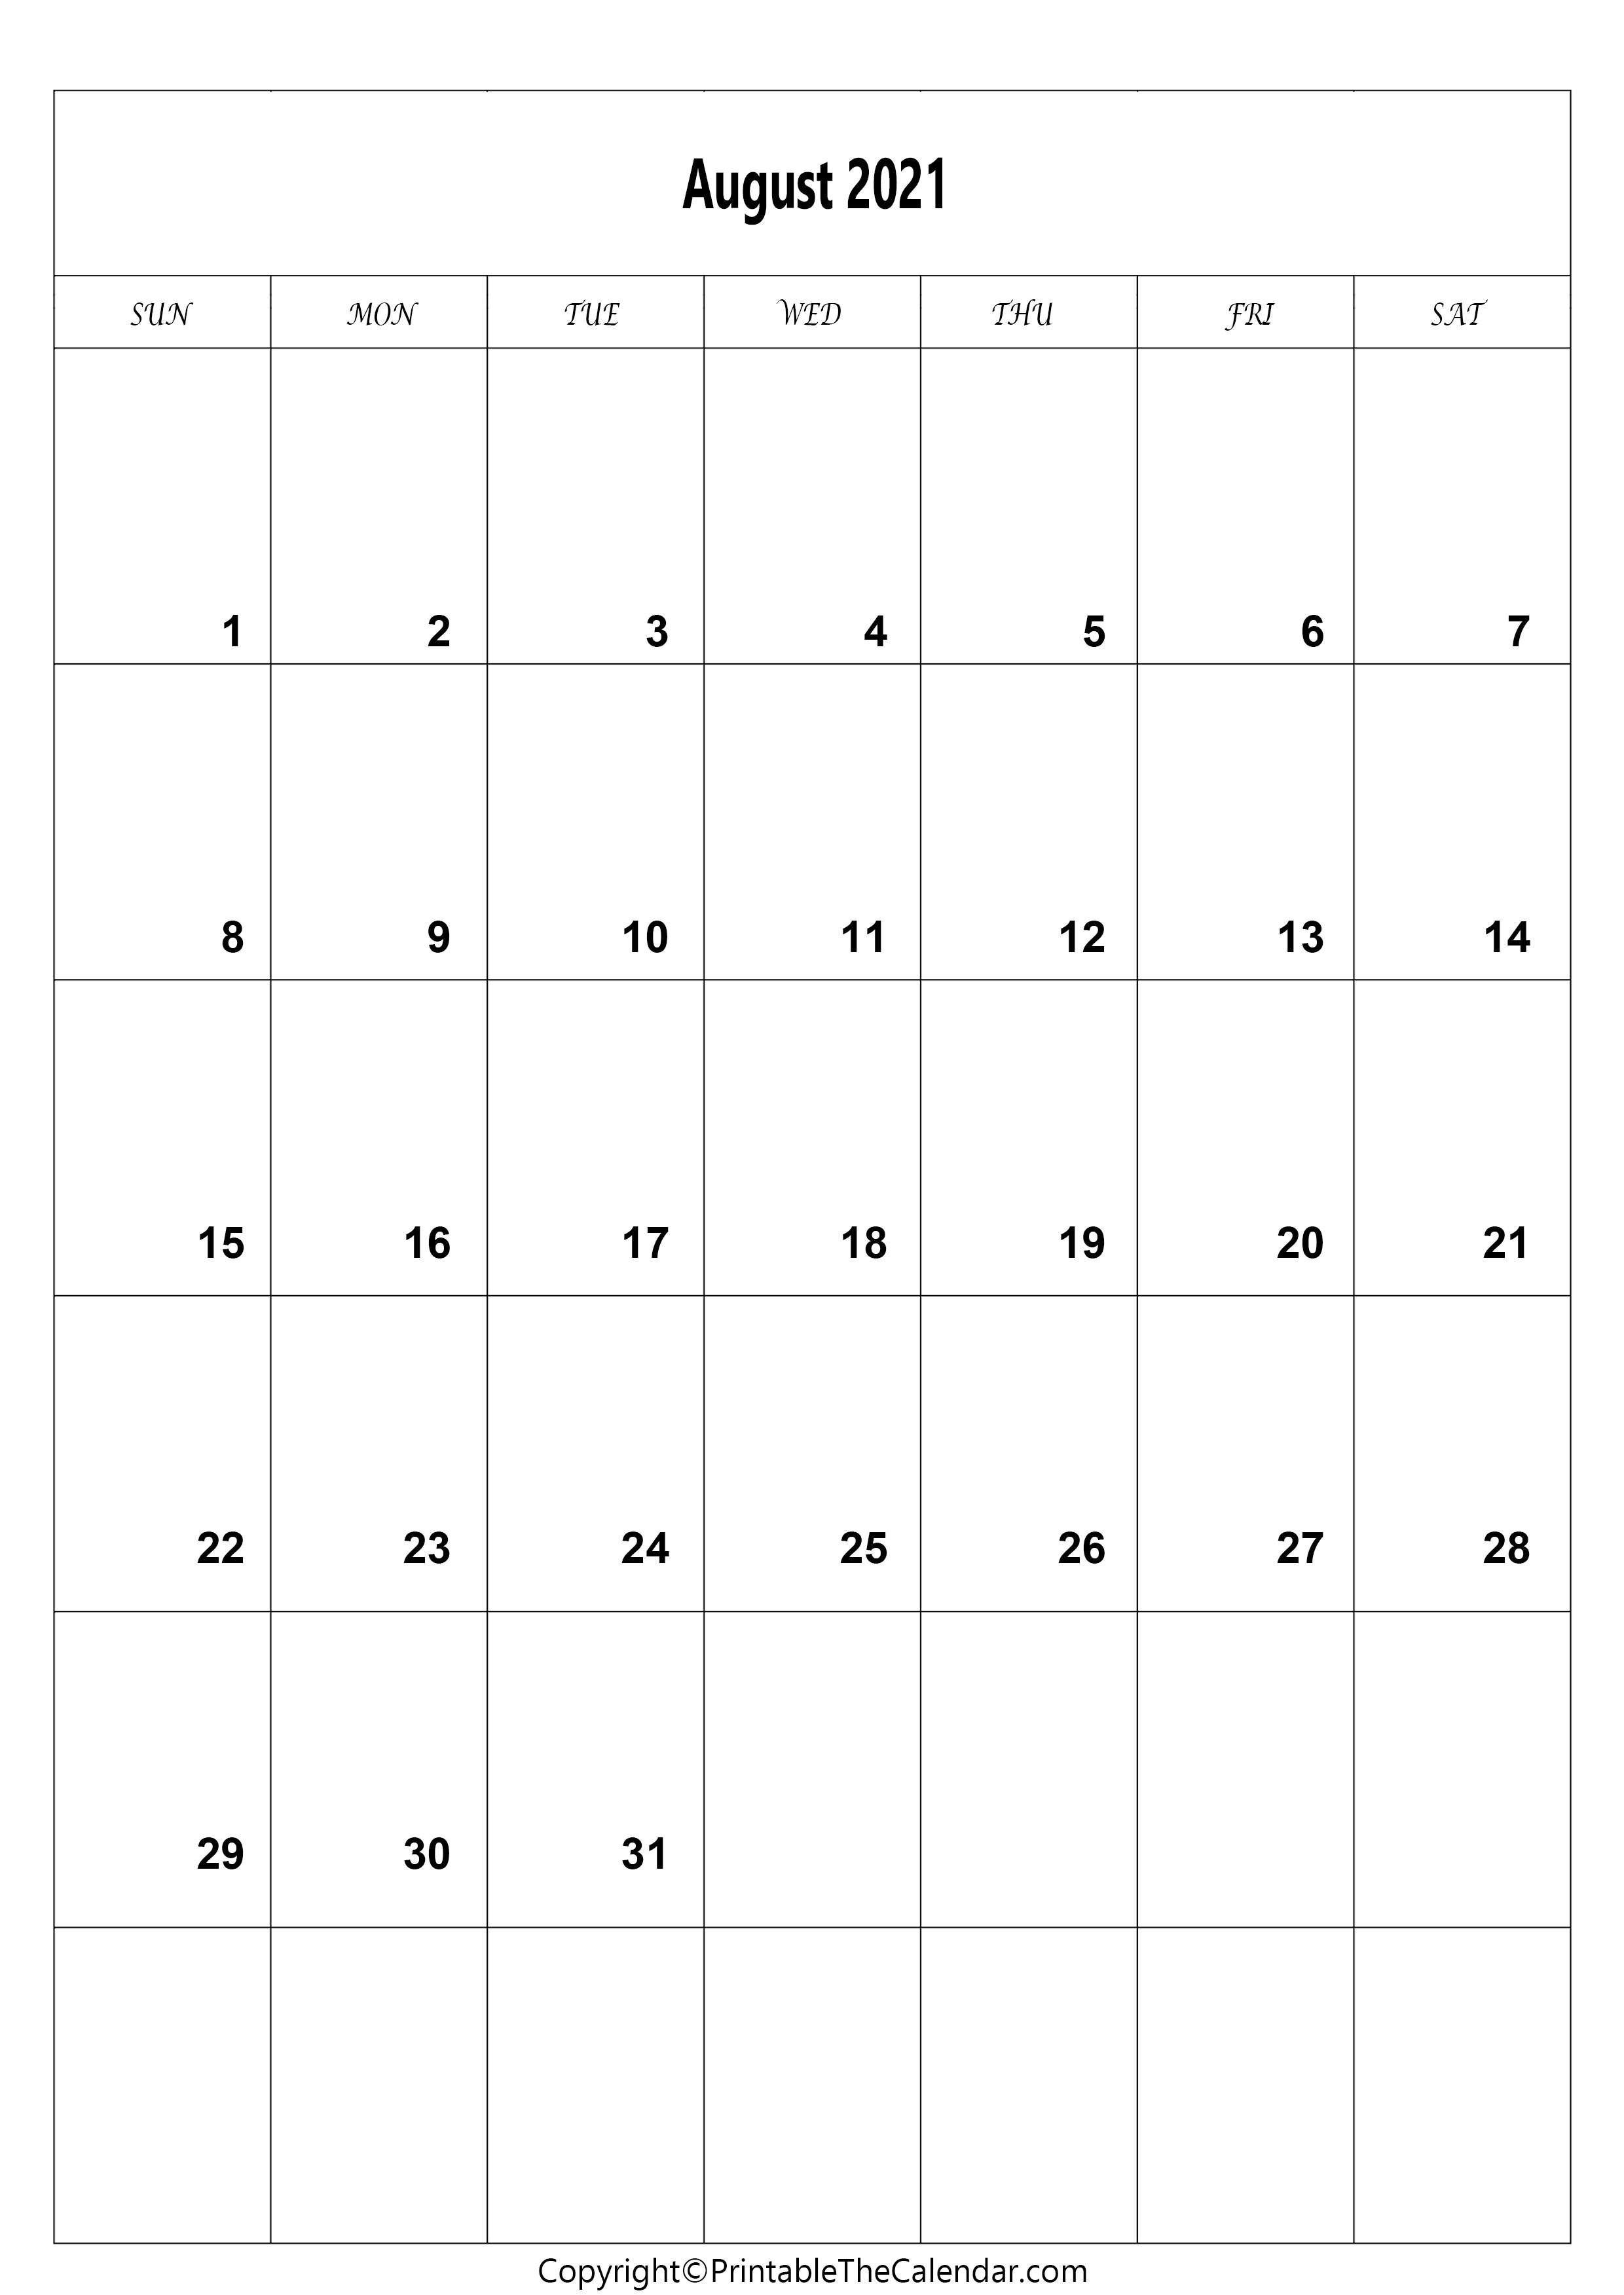 August 20 Calendar A20 Size [Free Printable Template]